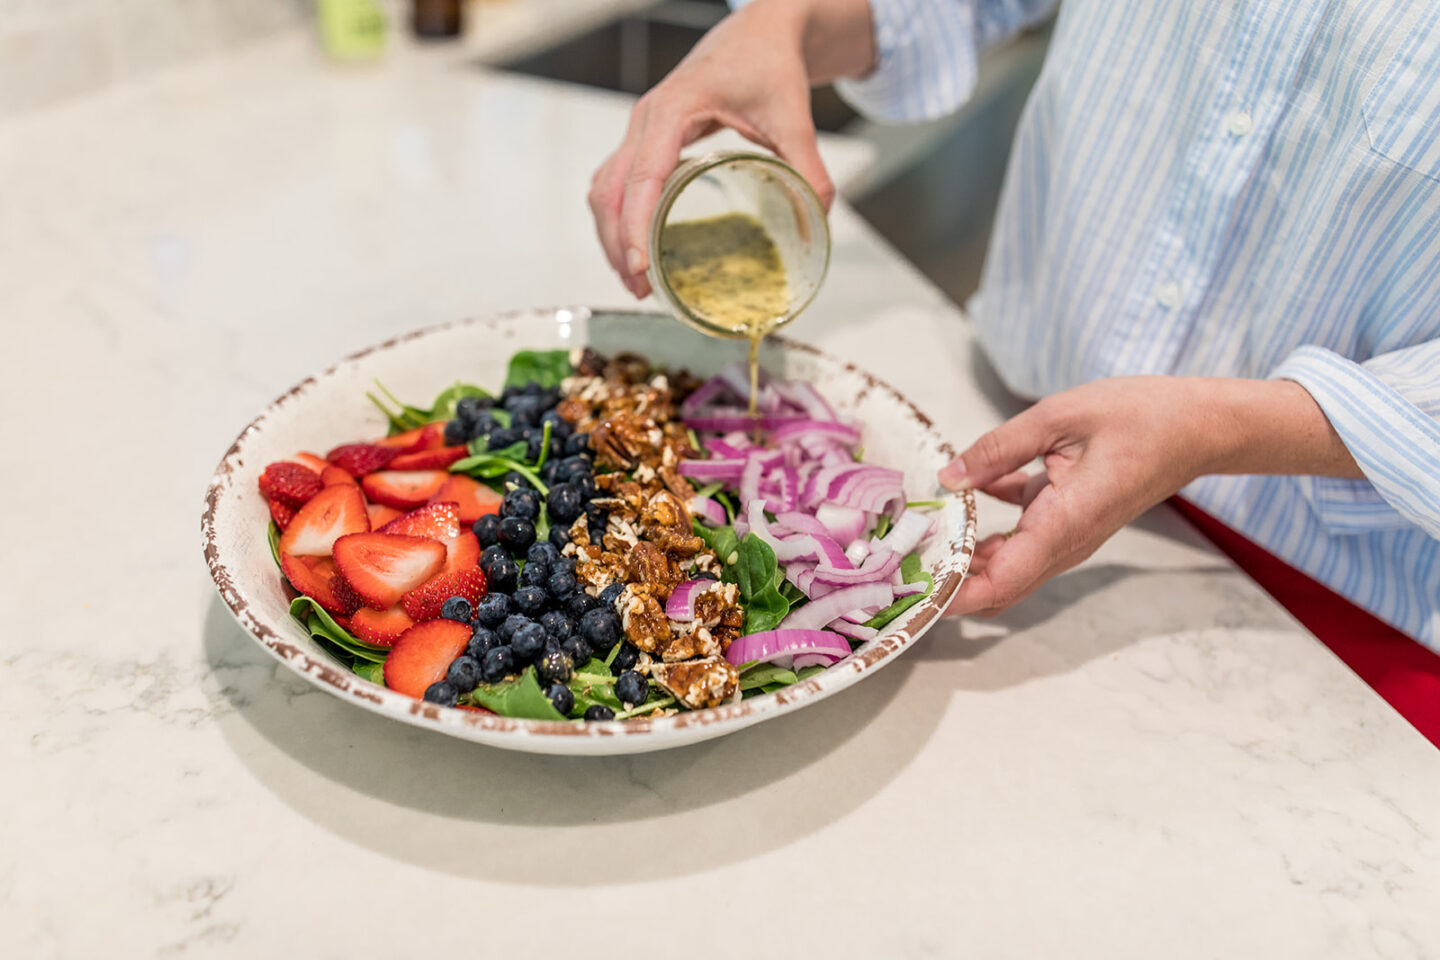 Easy Vegan Spinach and Berry Salad with pecans, a recipe featured by top Atlanta lifestyle blogger, Moderately High Maintenance   Berry Salad Recipe by popular Atlanta lifestyle blog, Moderately High Maintenance: image of a woman making a spinach and berry salad.